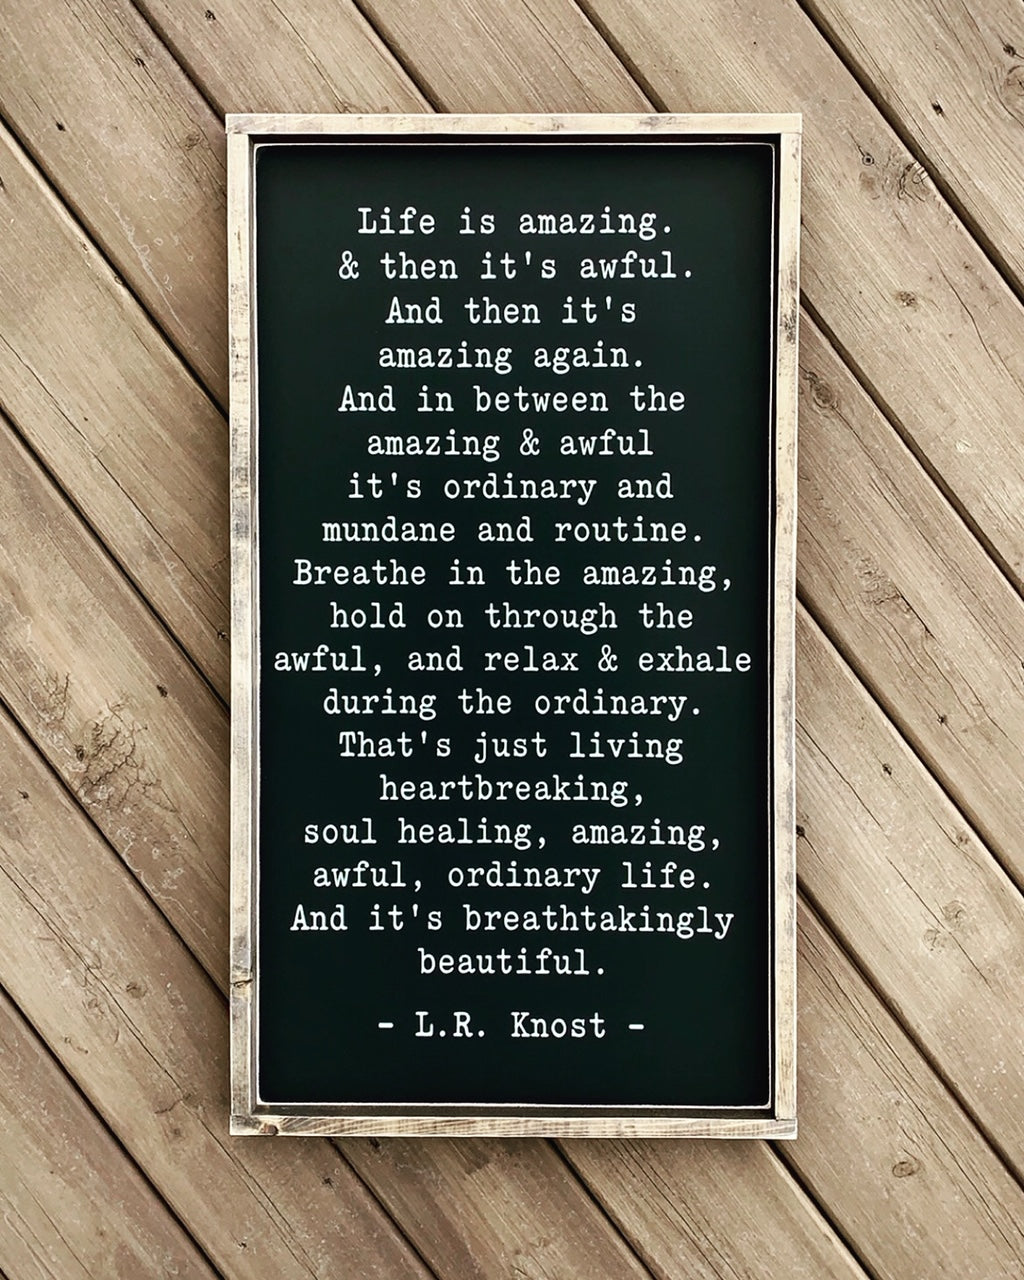 Life Is Amazing - L.R. Knost - Wood Sign